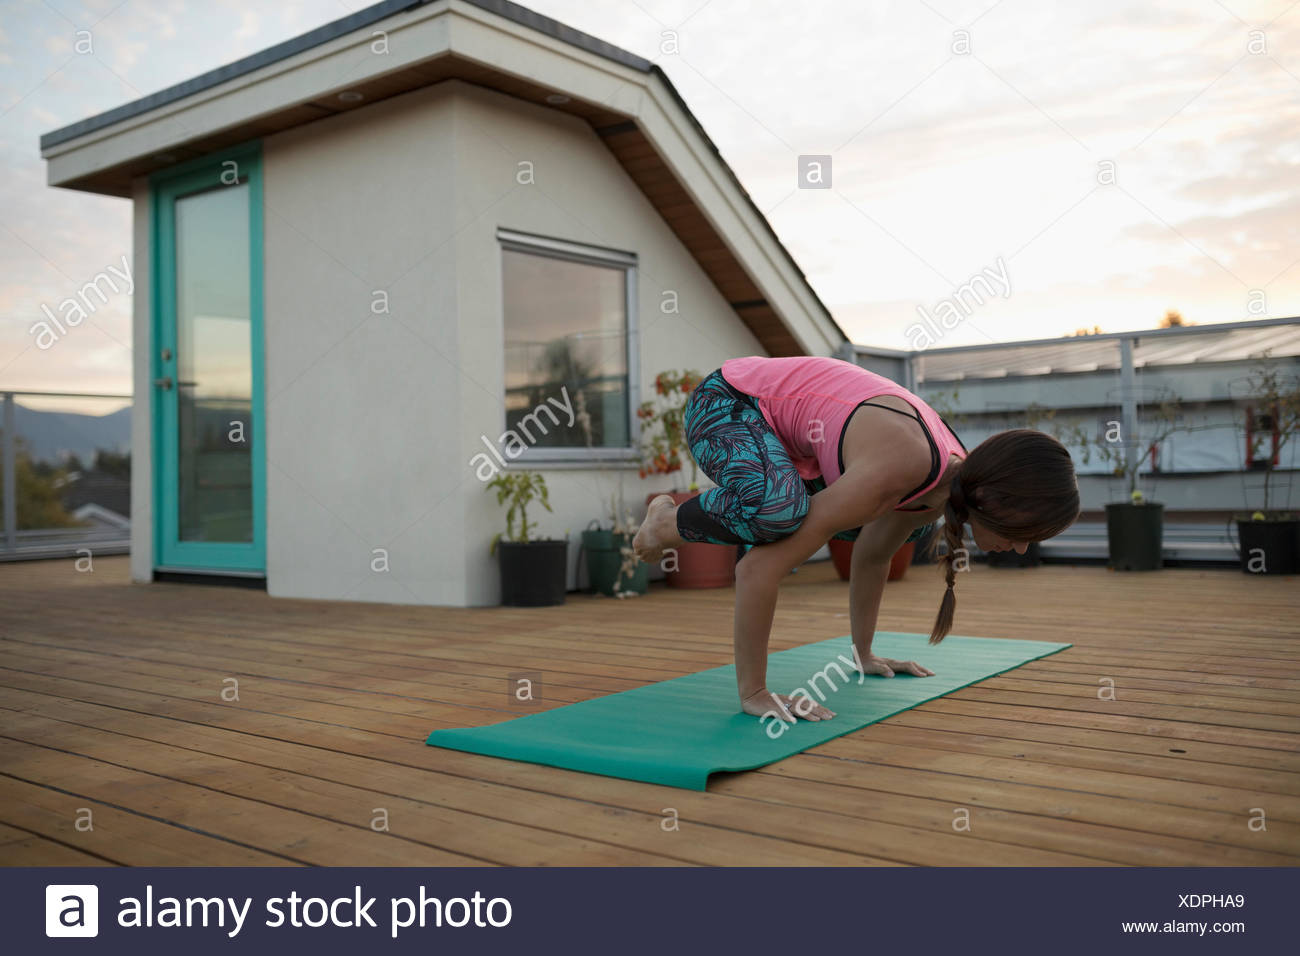 Woman practicing yoga crow pose on yoga mat on patio deck - Stock Image